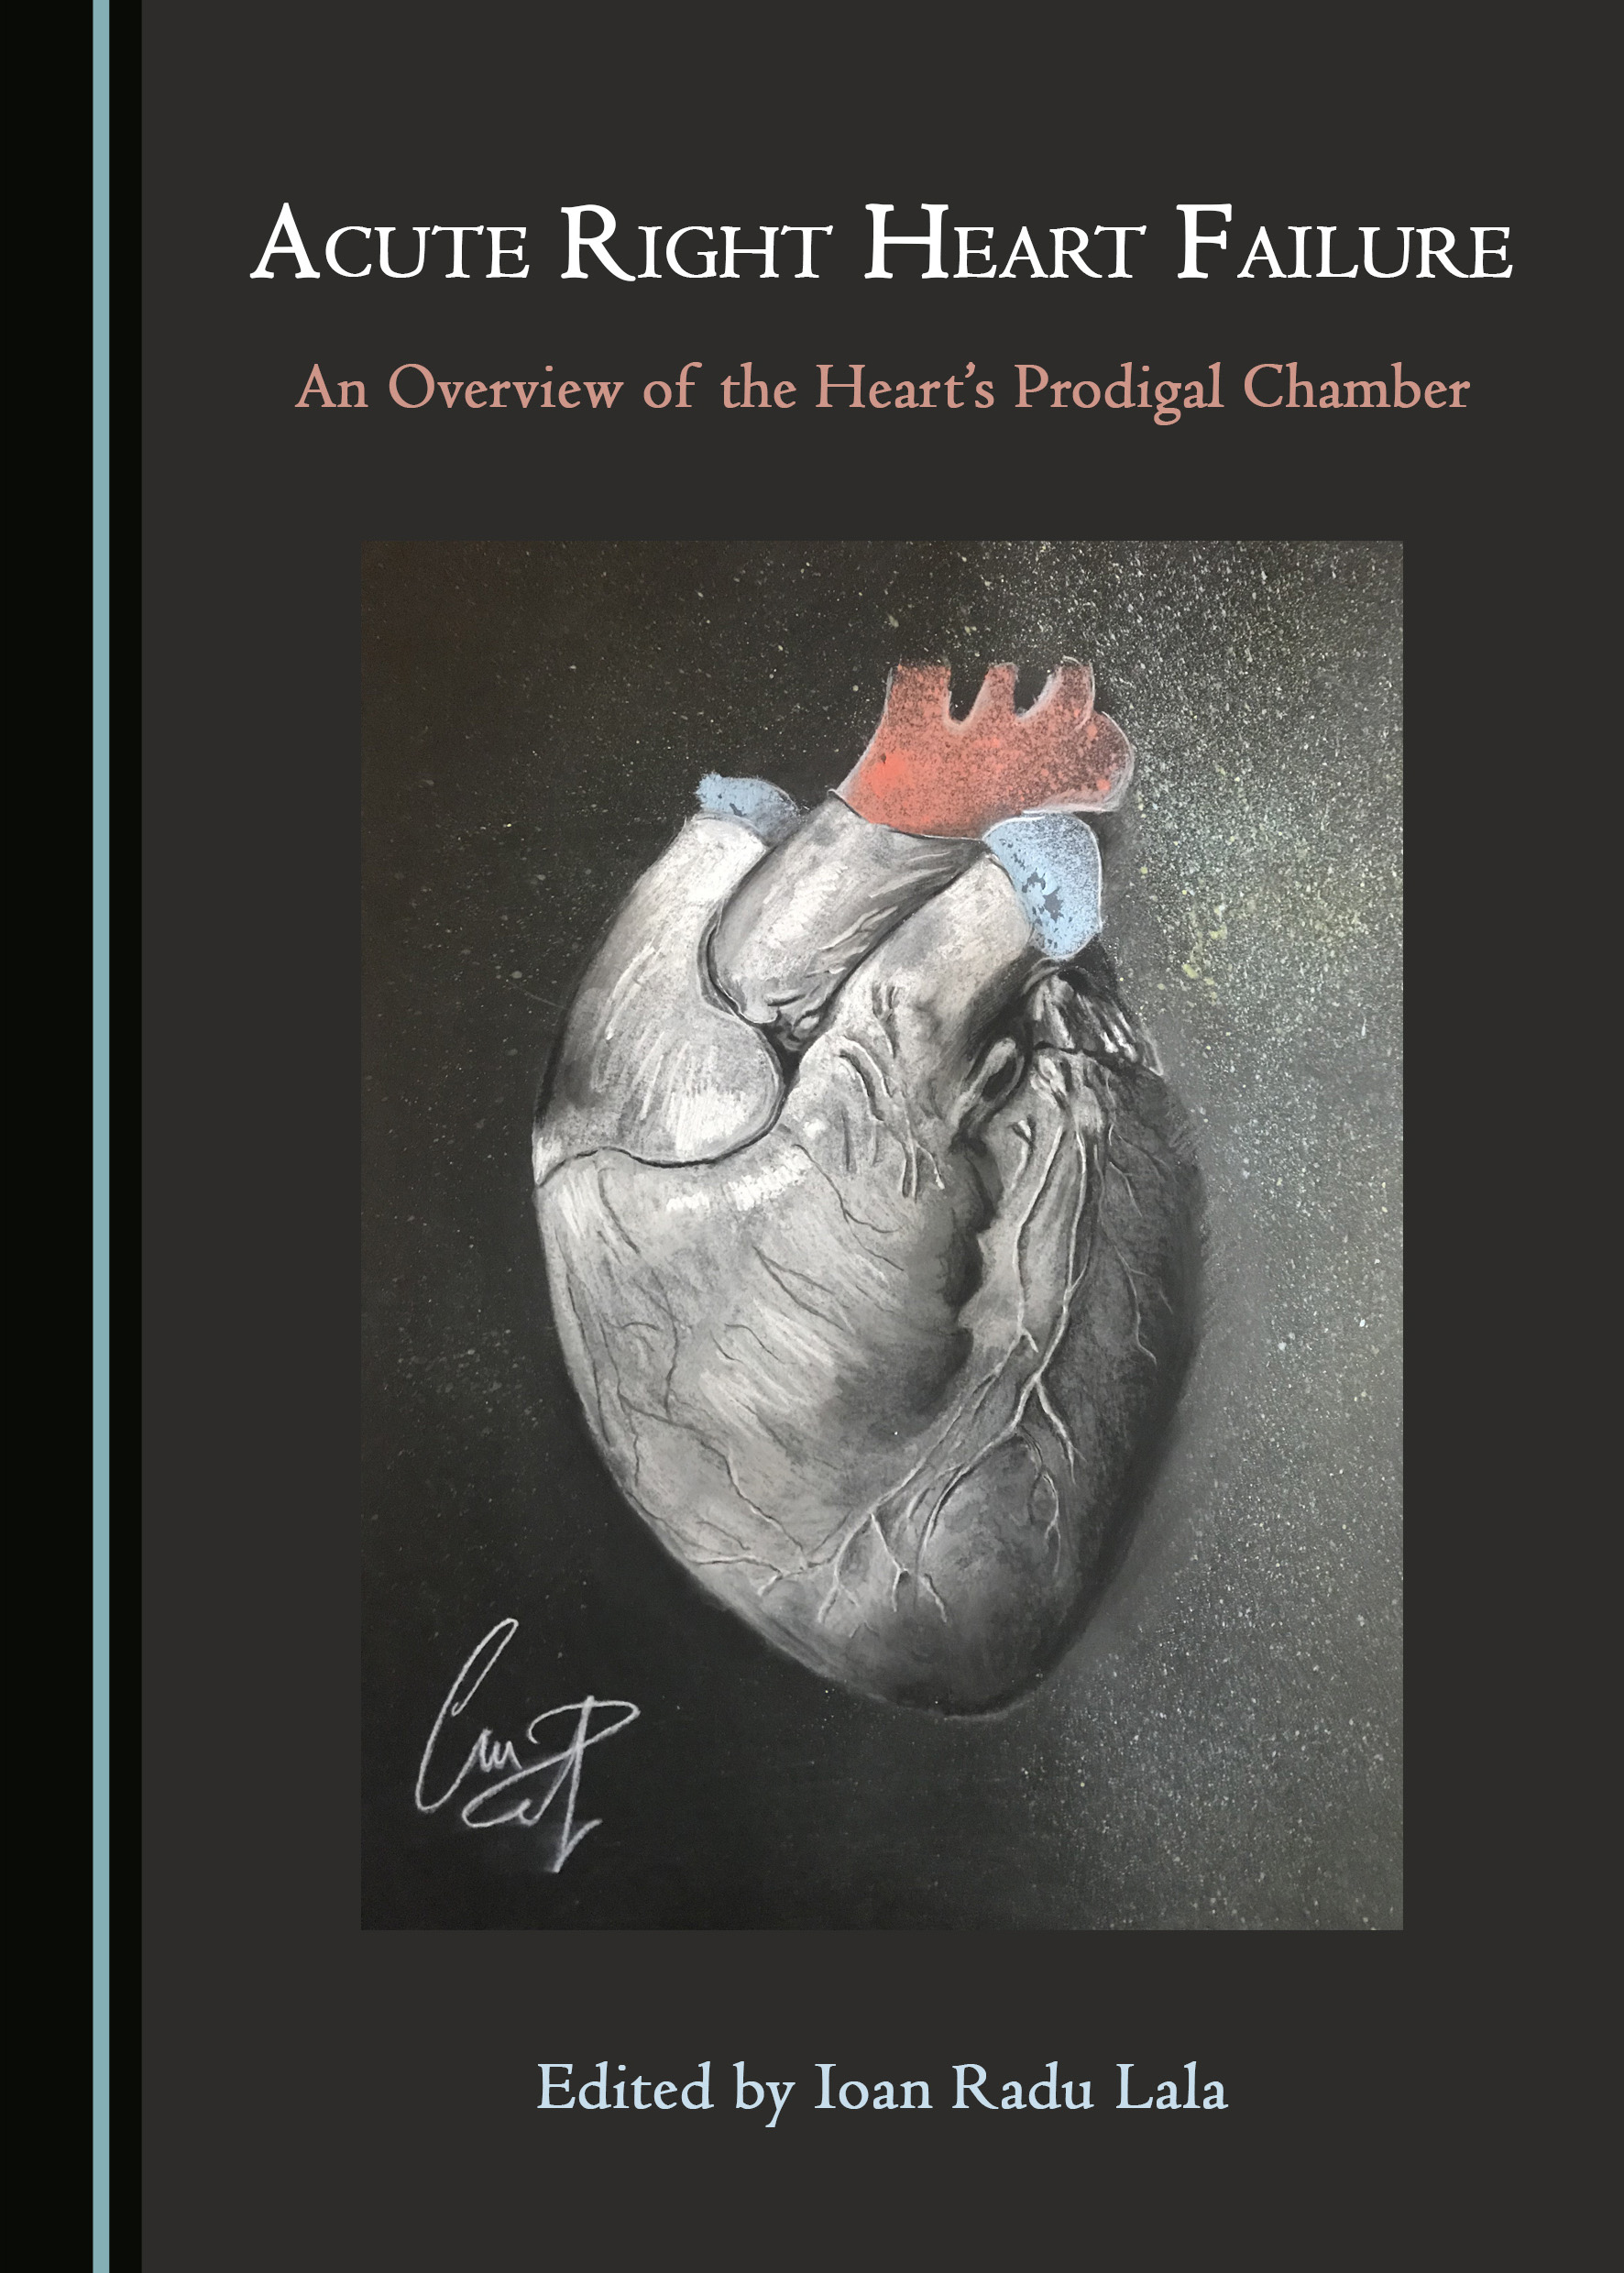 Acute Right Heart Failure: An Overview of the Heart's Prodigal Chamber